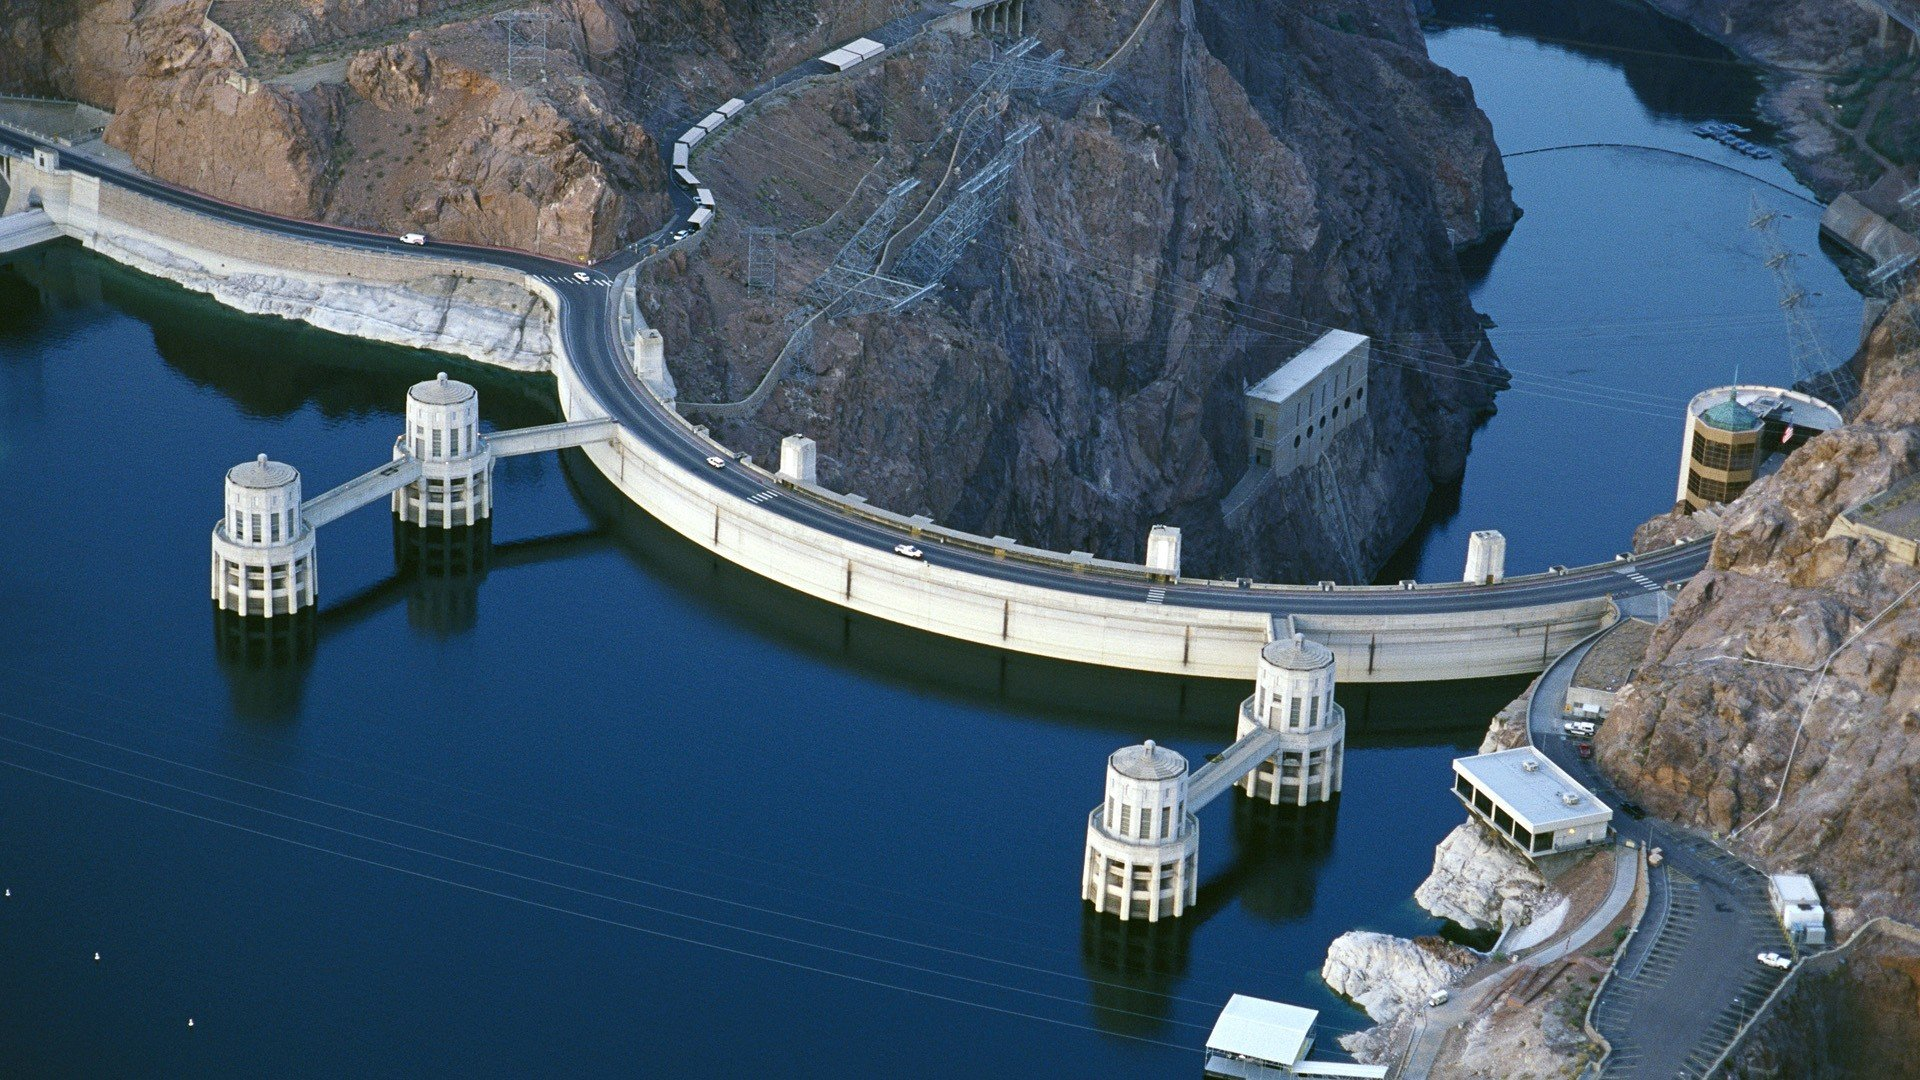 Hoover Dam Wallpaper 5   1920 X 1080 stmednet 1920x1080